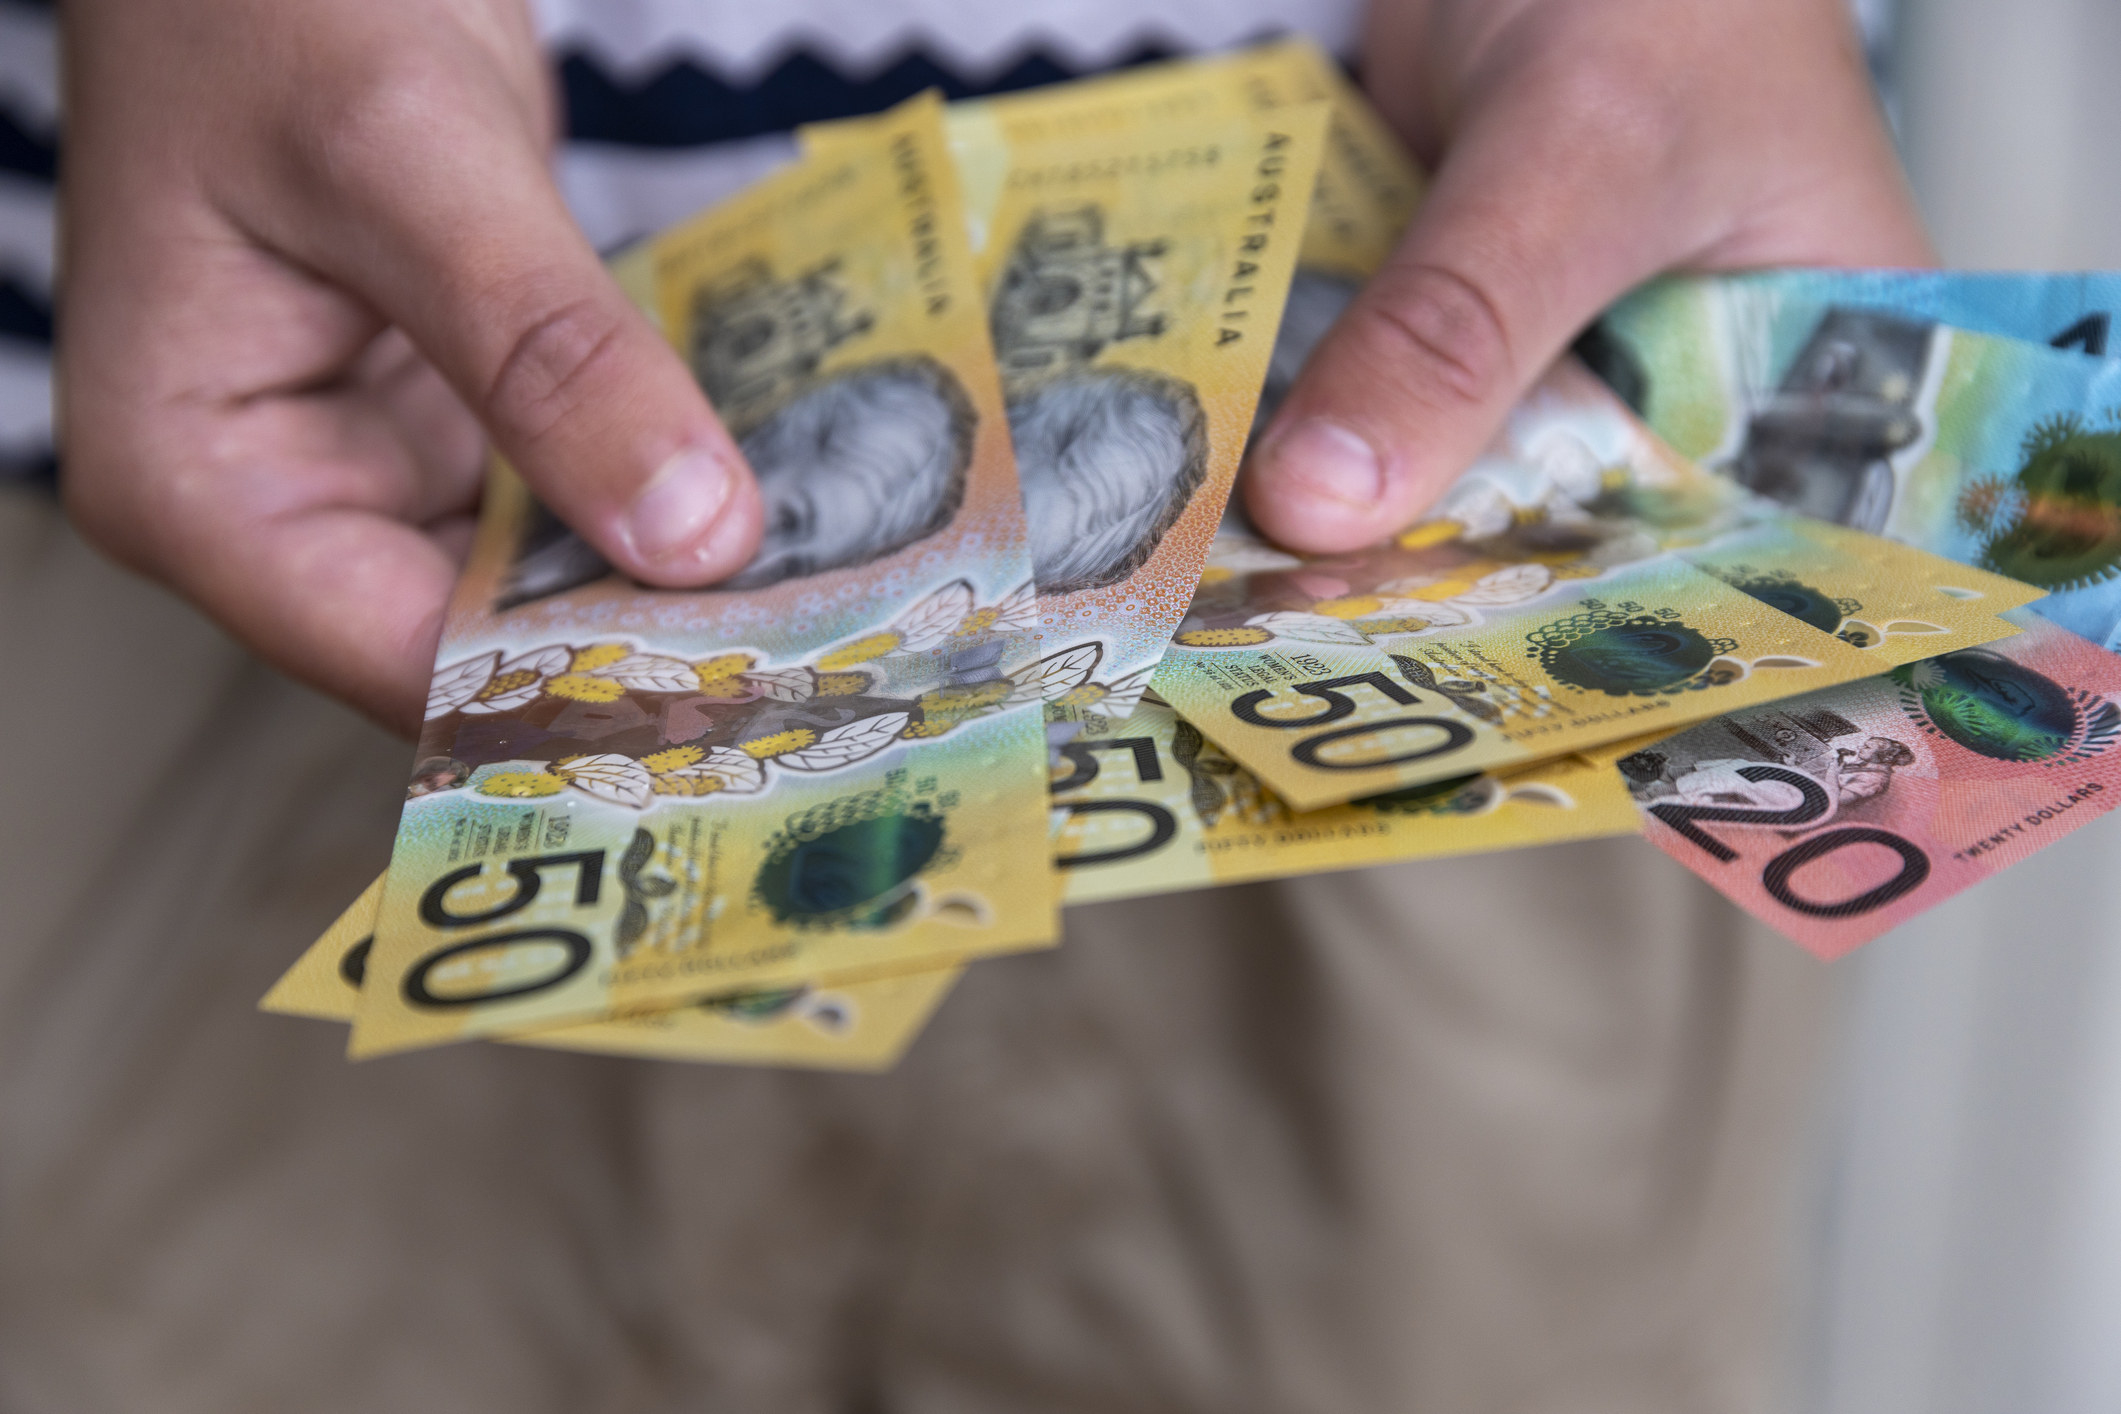 A hand holding Australian currency.